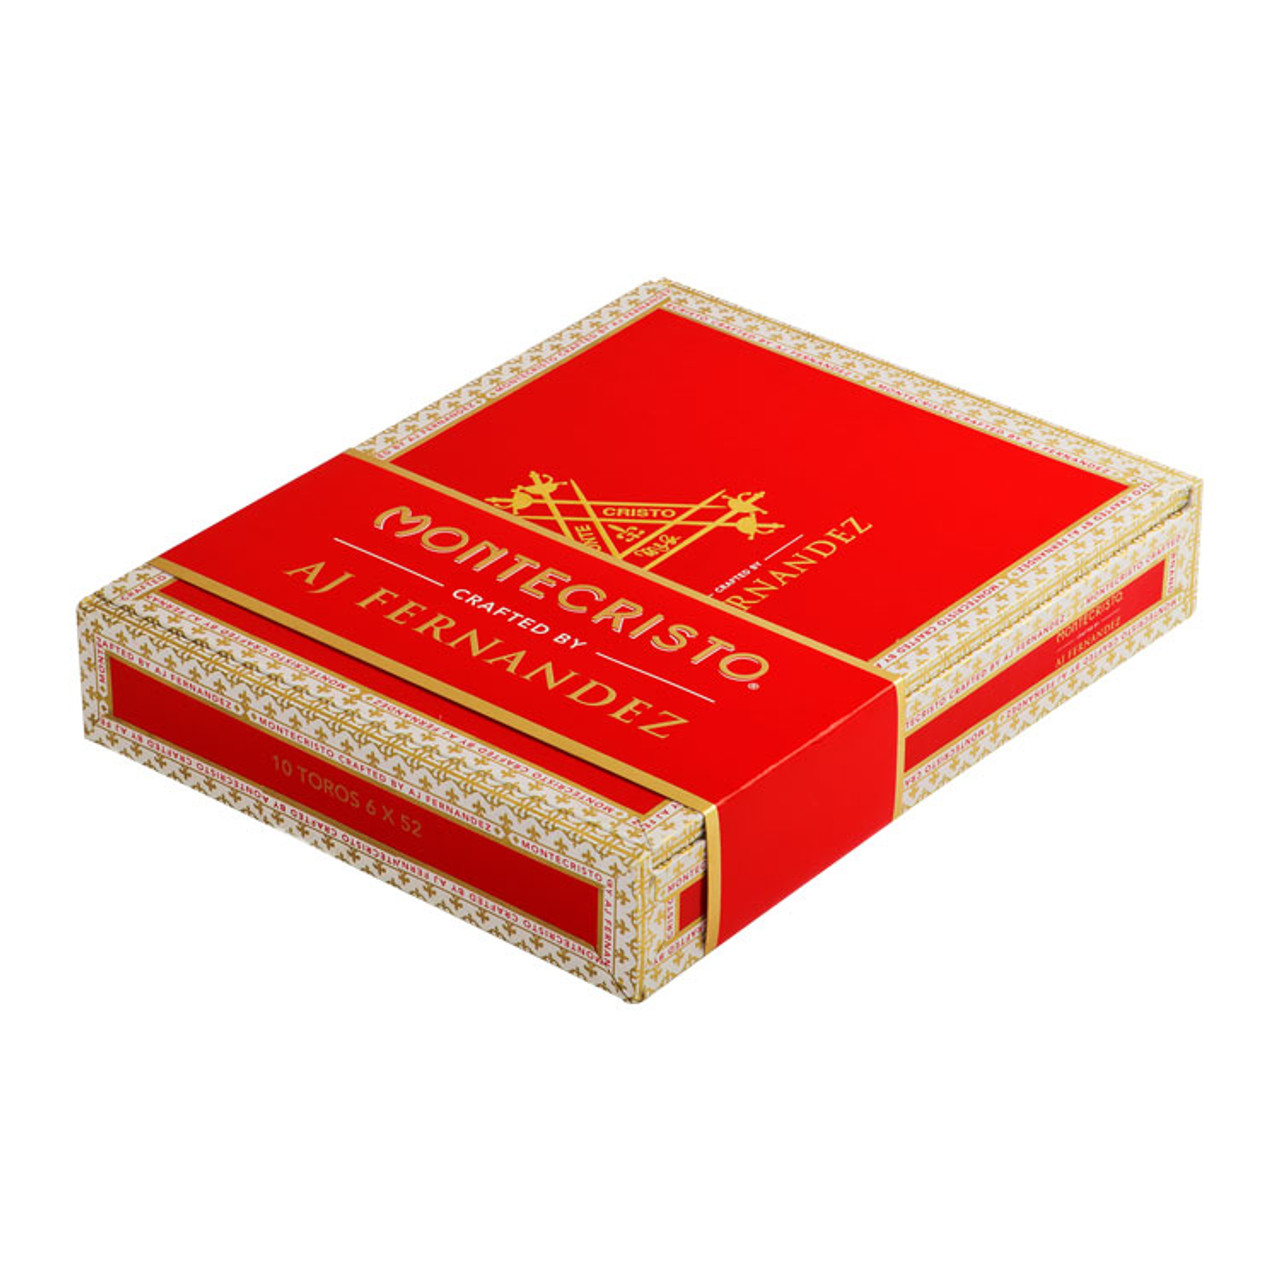 Montecristo Crafted by A.J. Fernandez Robusto Cigars - 5 x 52 (Box of 10)